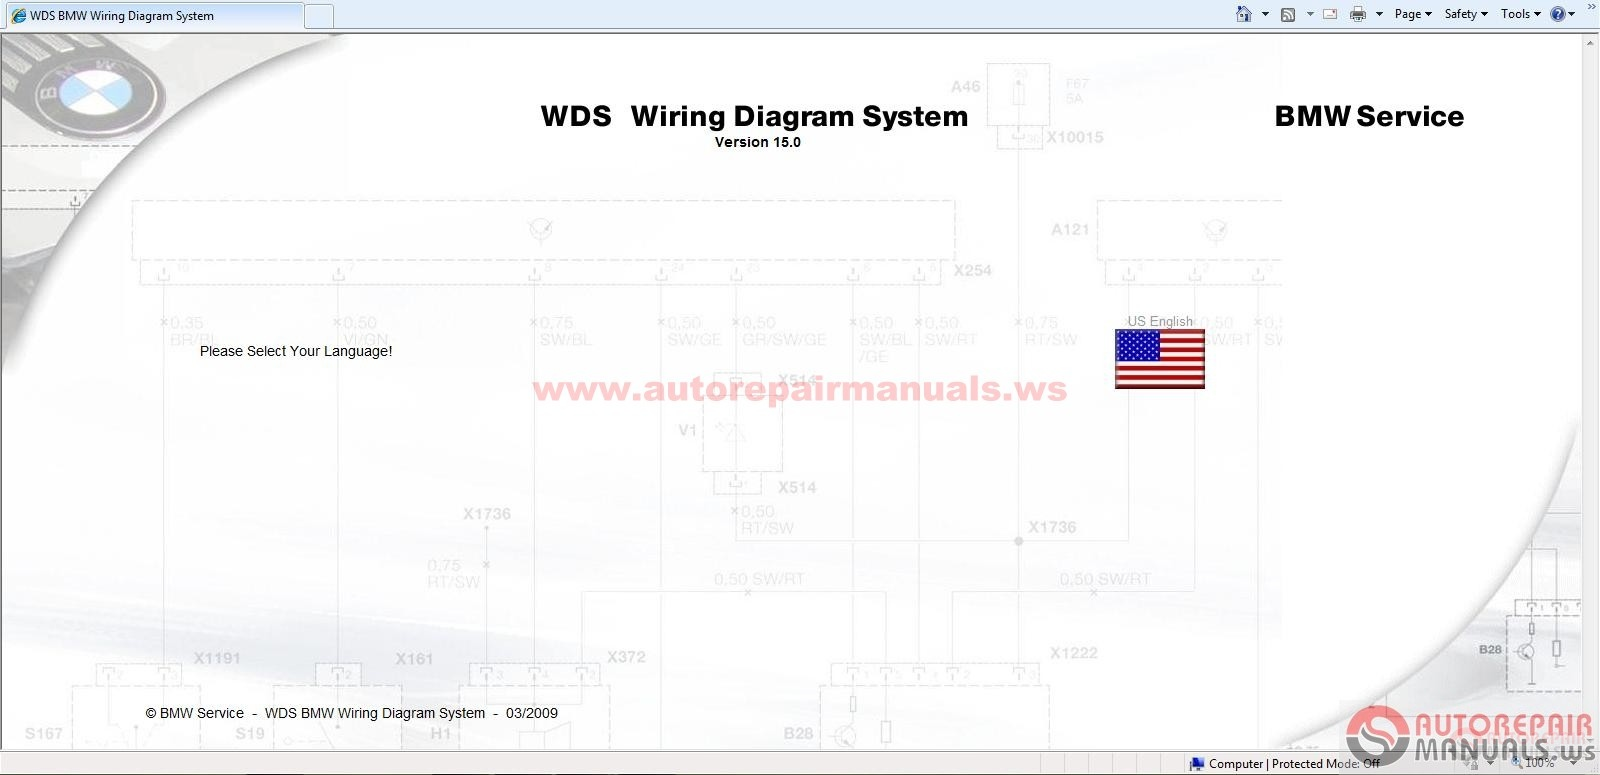 bmw mini wds 7.0 download